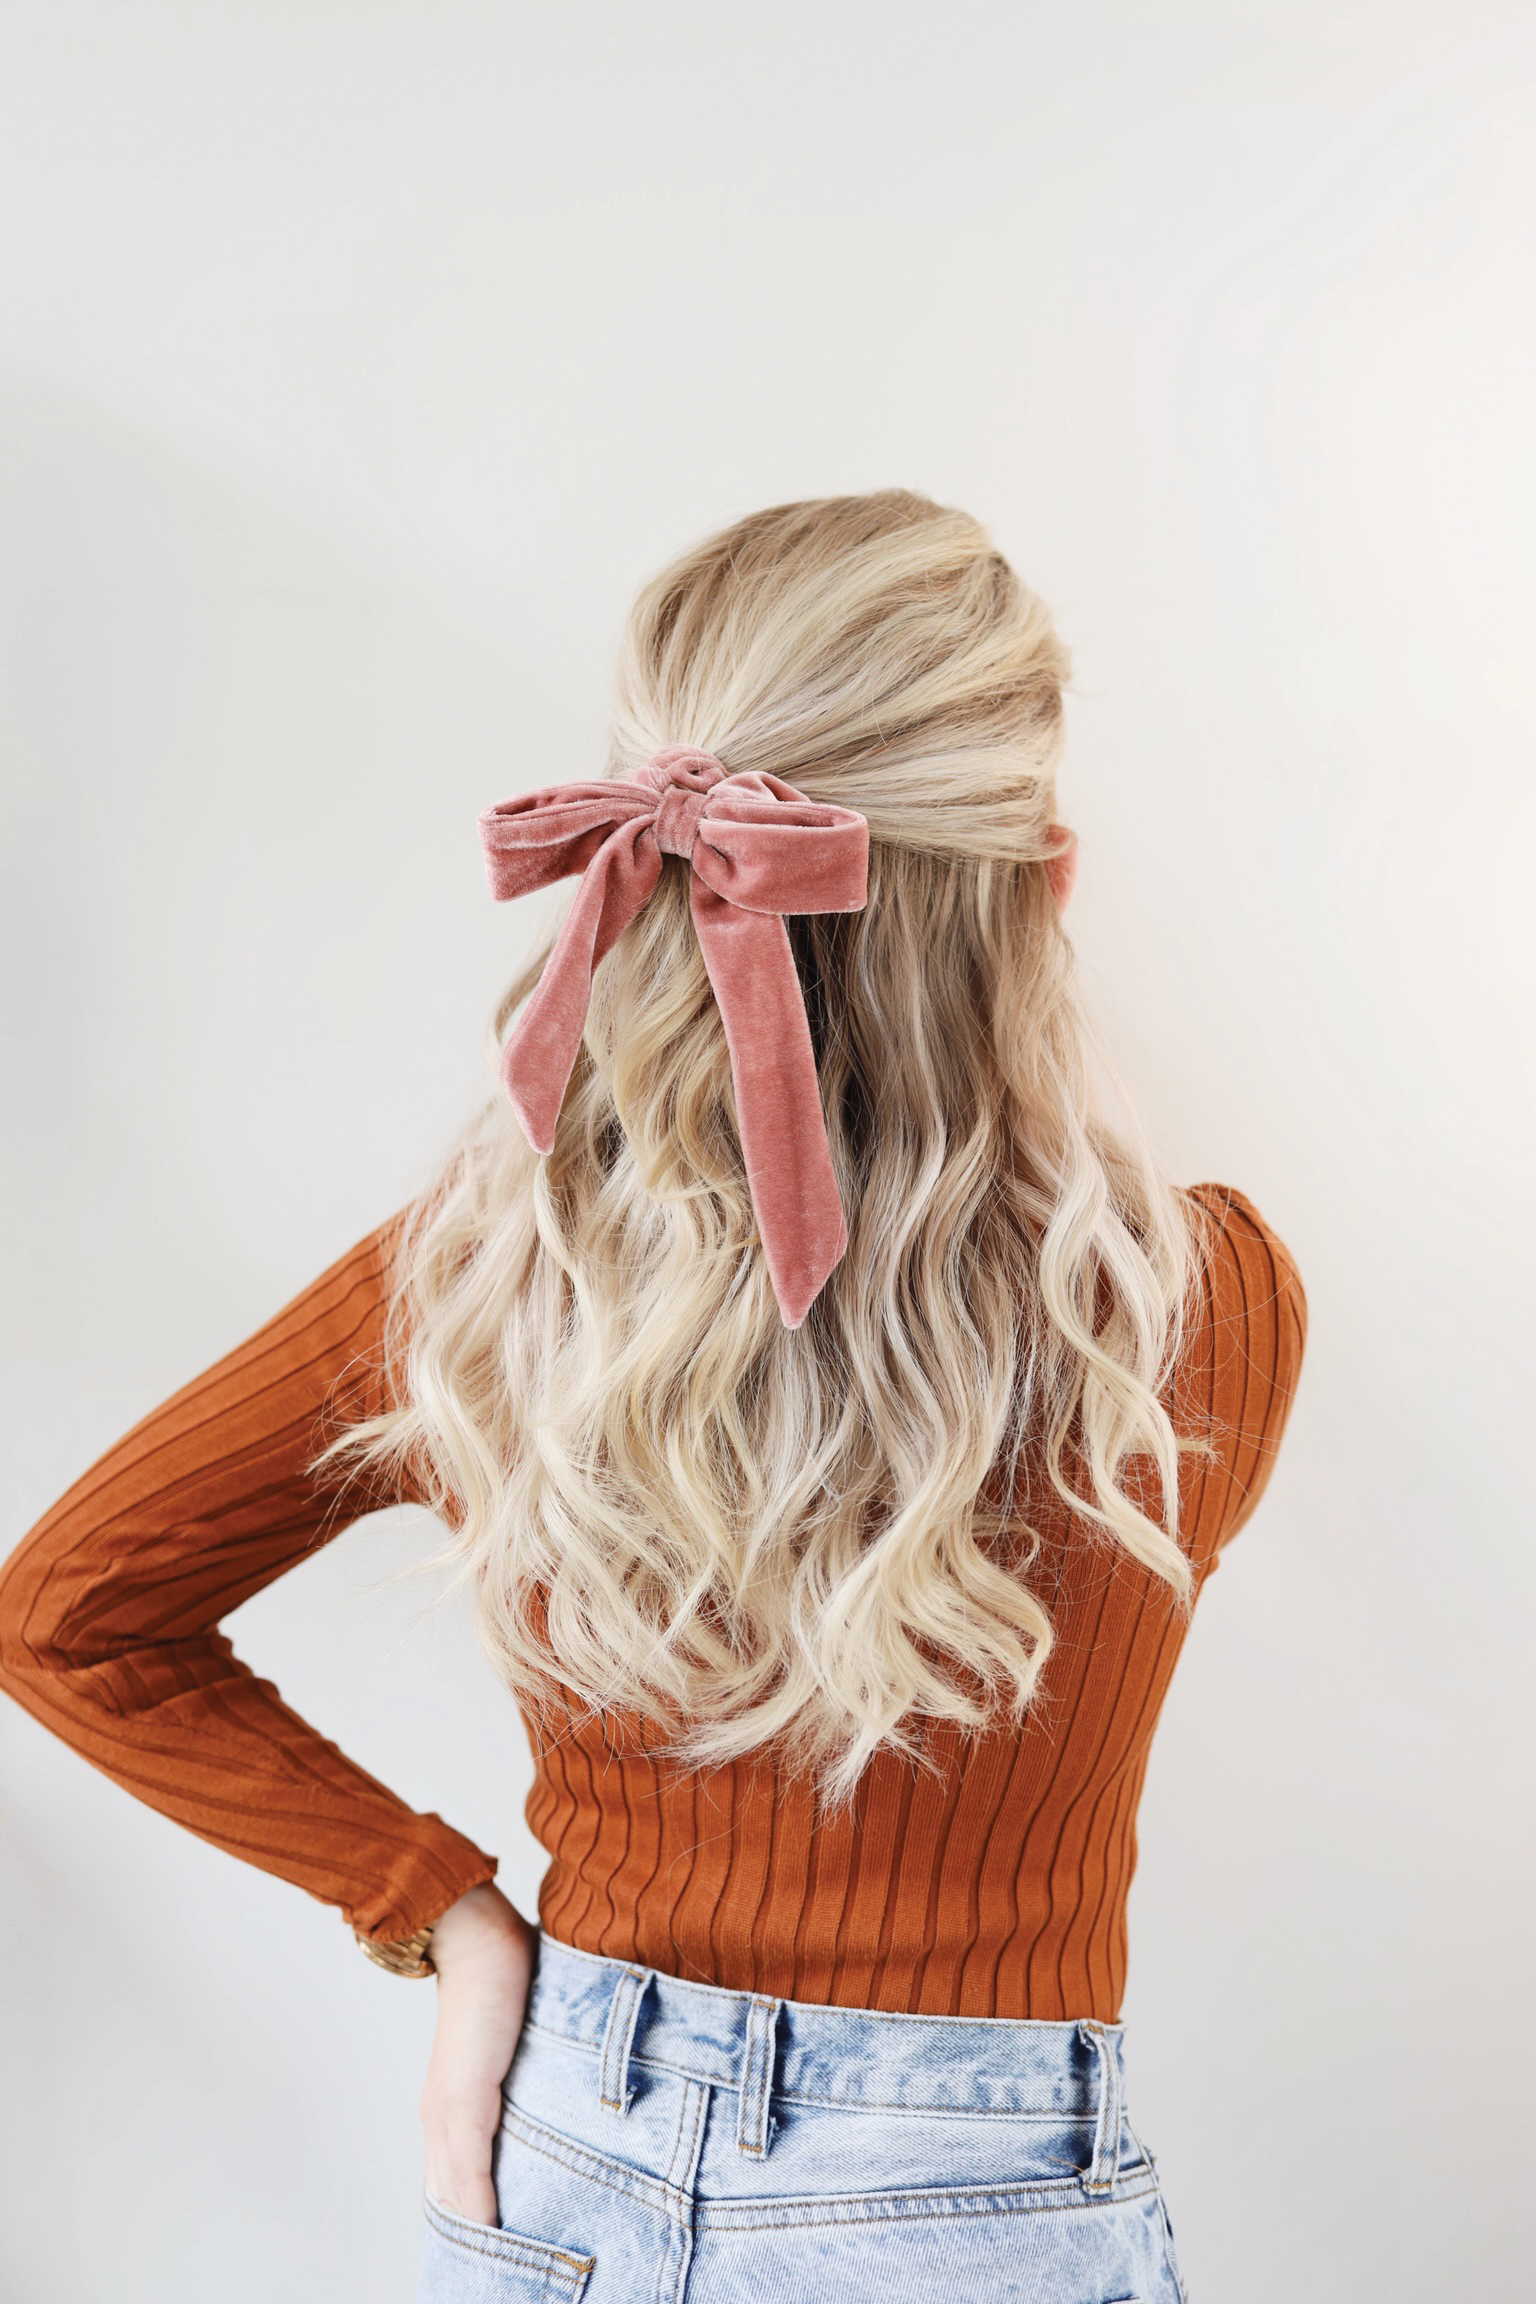 Hair Accessories – Where To Buy & How To Style Them #hairaccessories